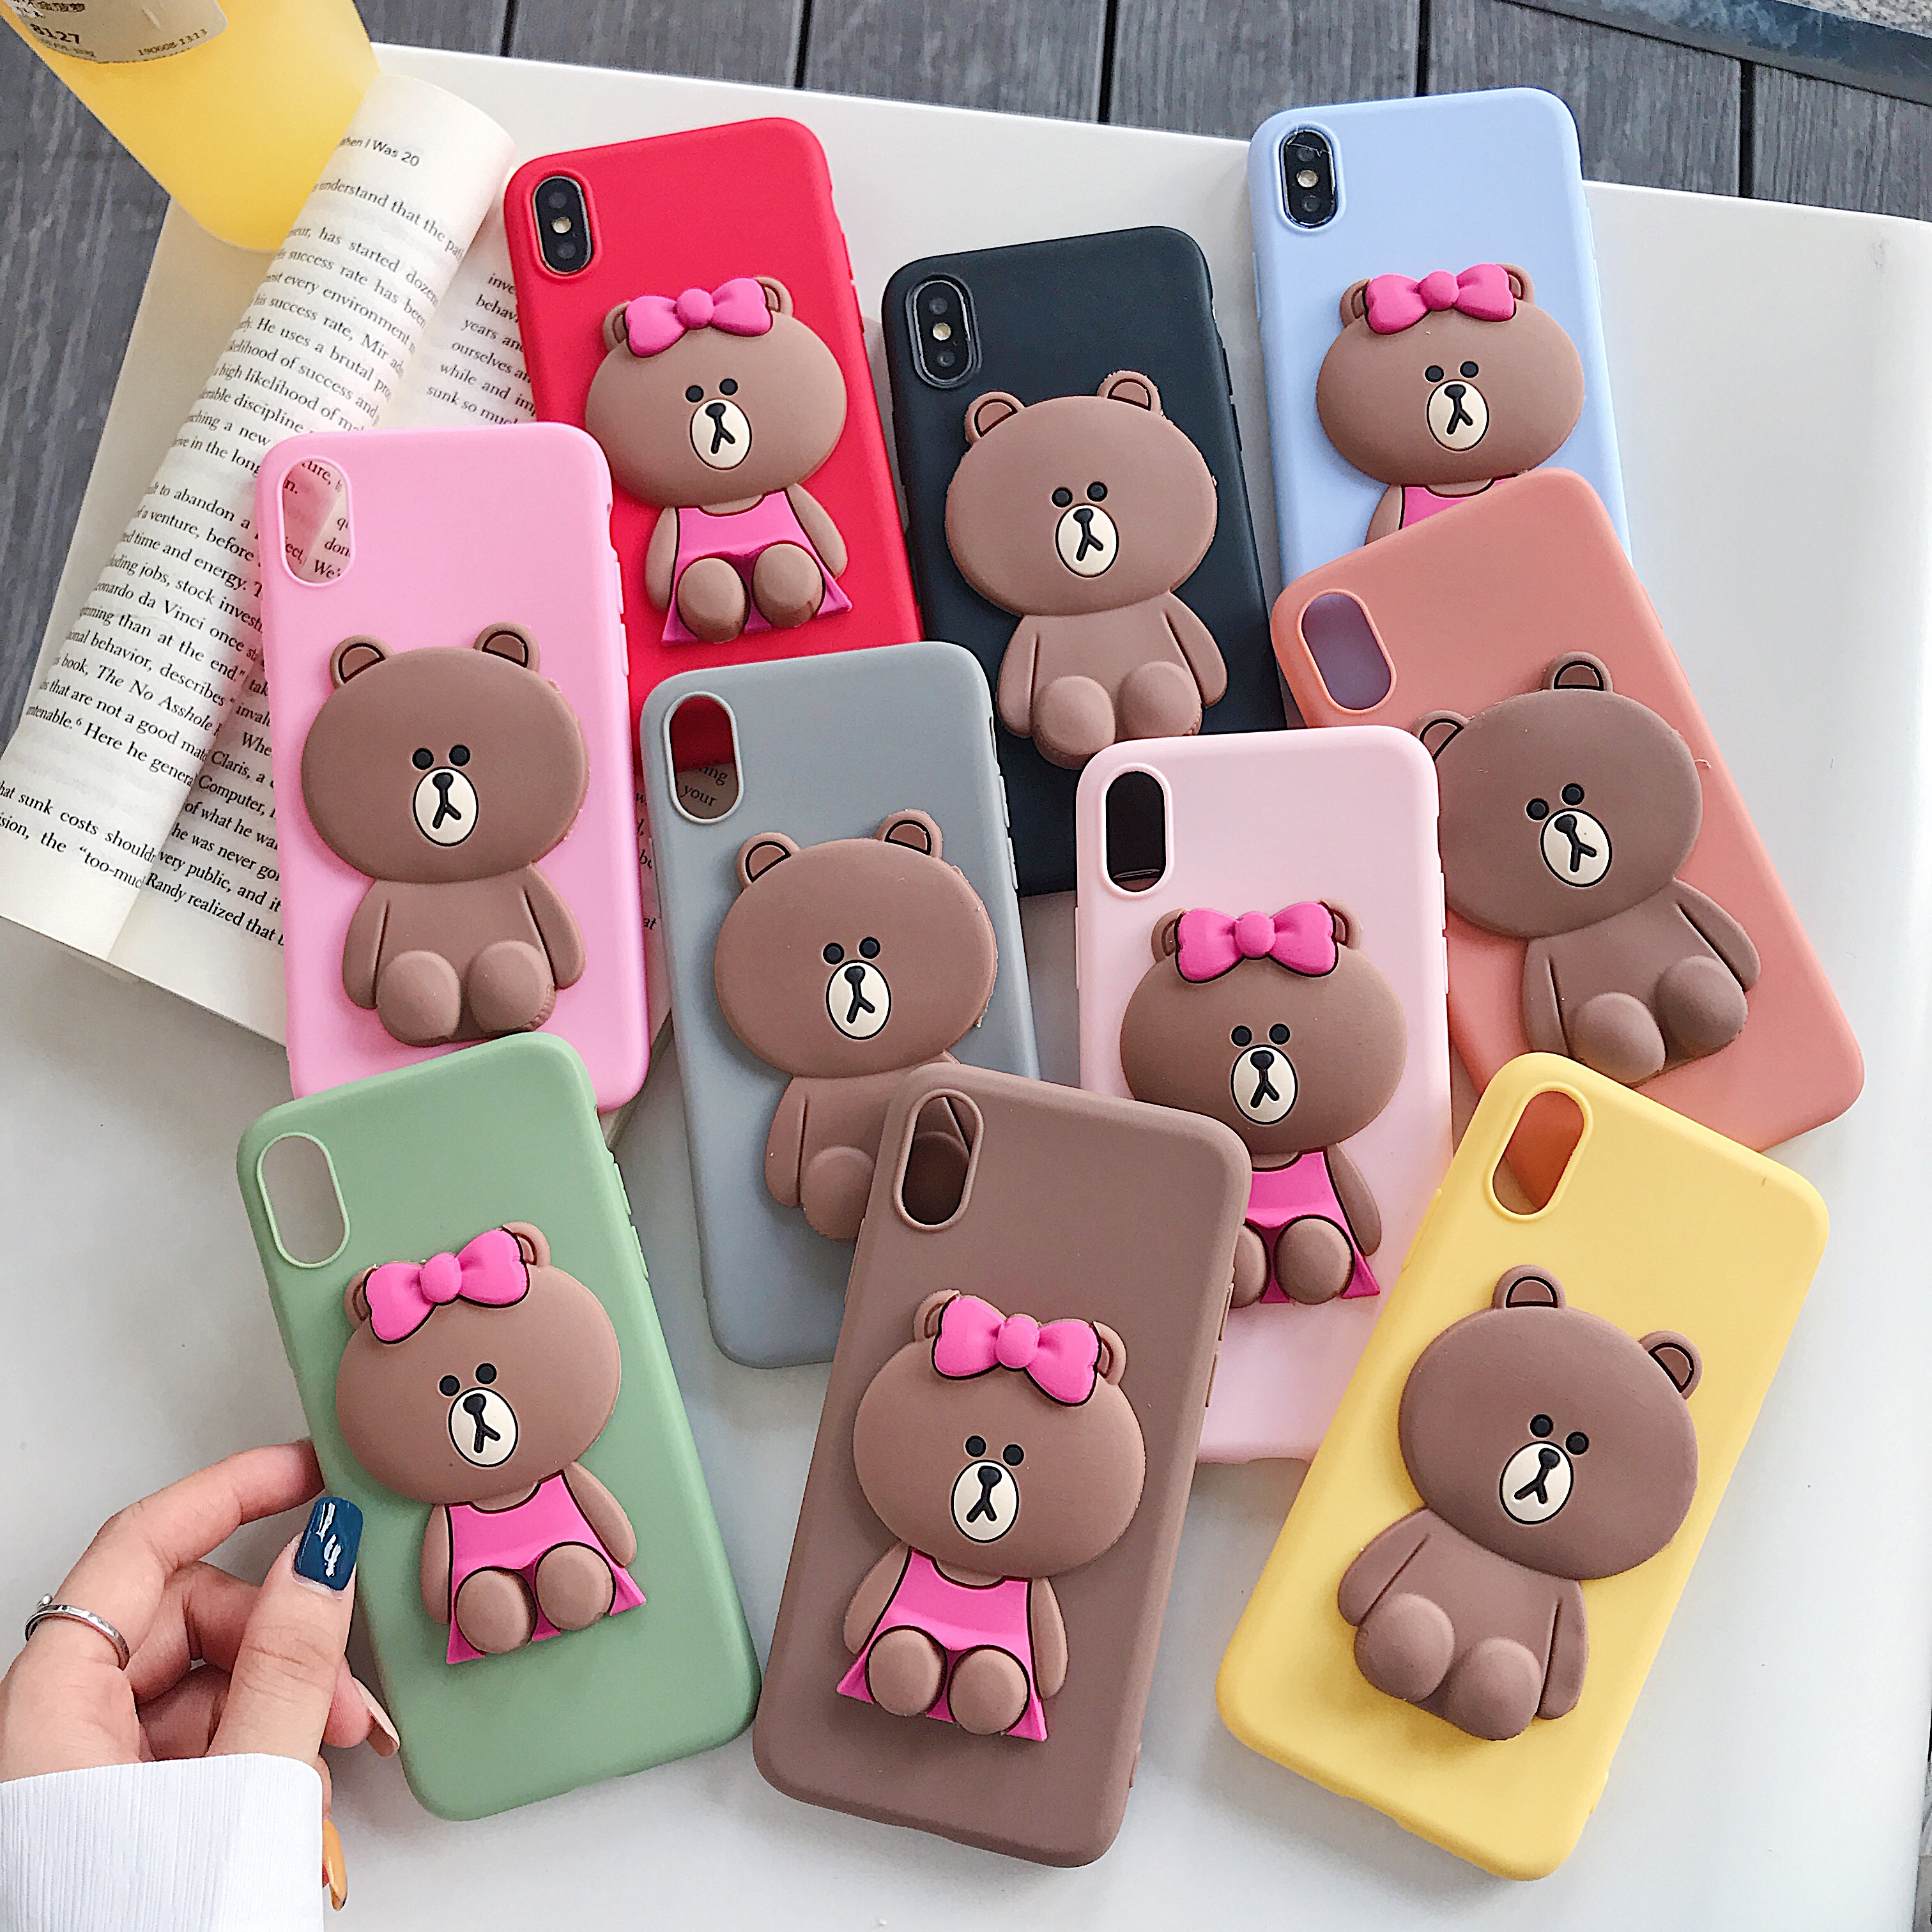 3D cute cartoon Brown Bears silicone protection phone case for iphone X 7 8 plus 6 6s plus soft tpu cover for iphon 11 Xr Xs max